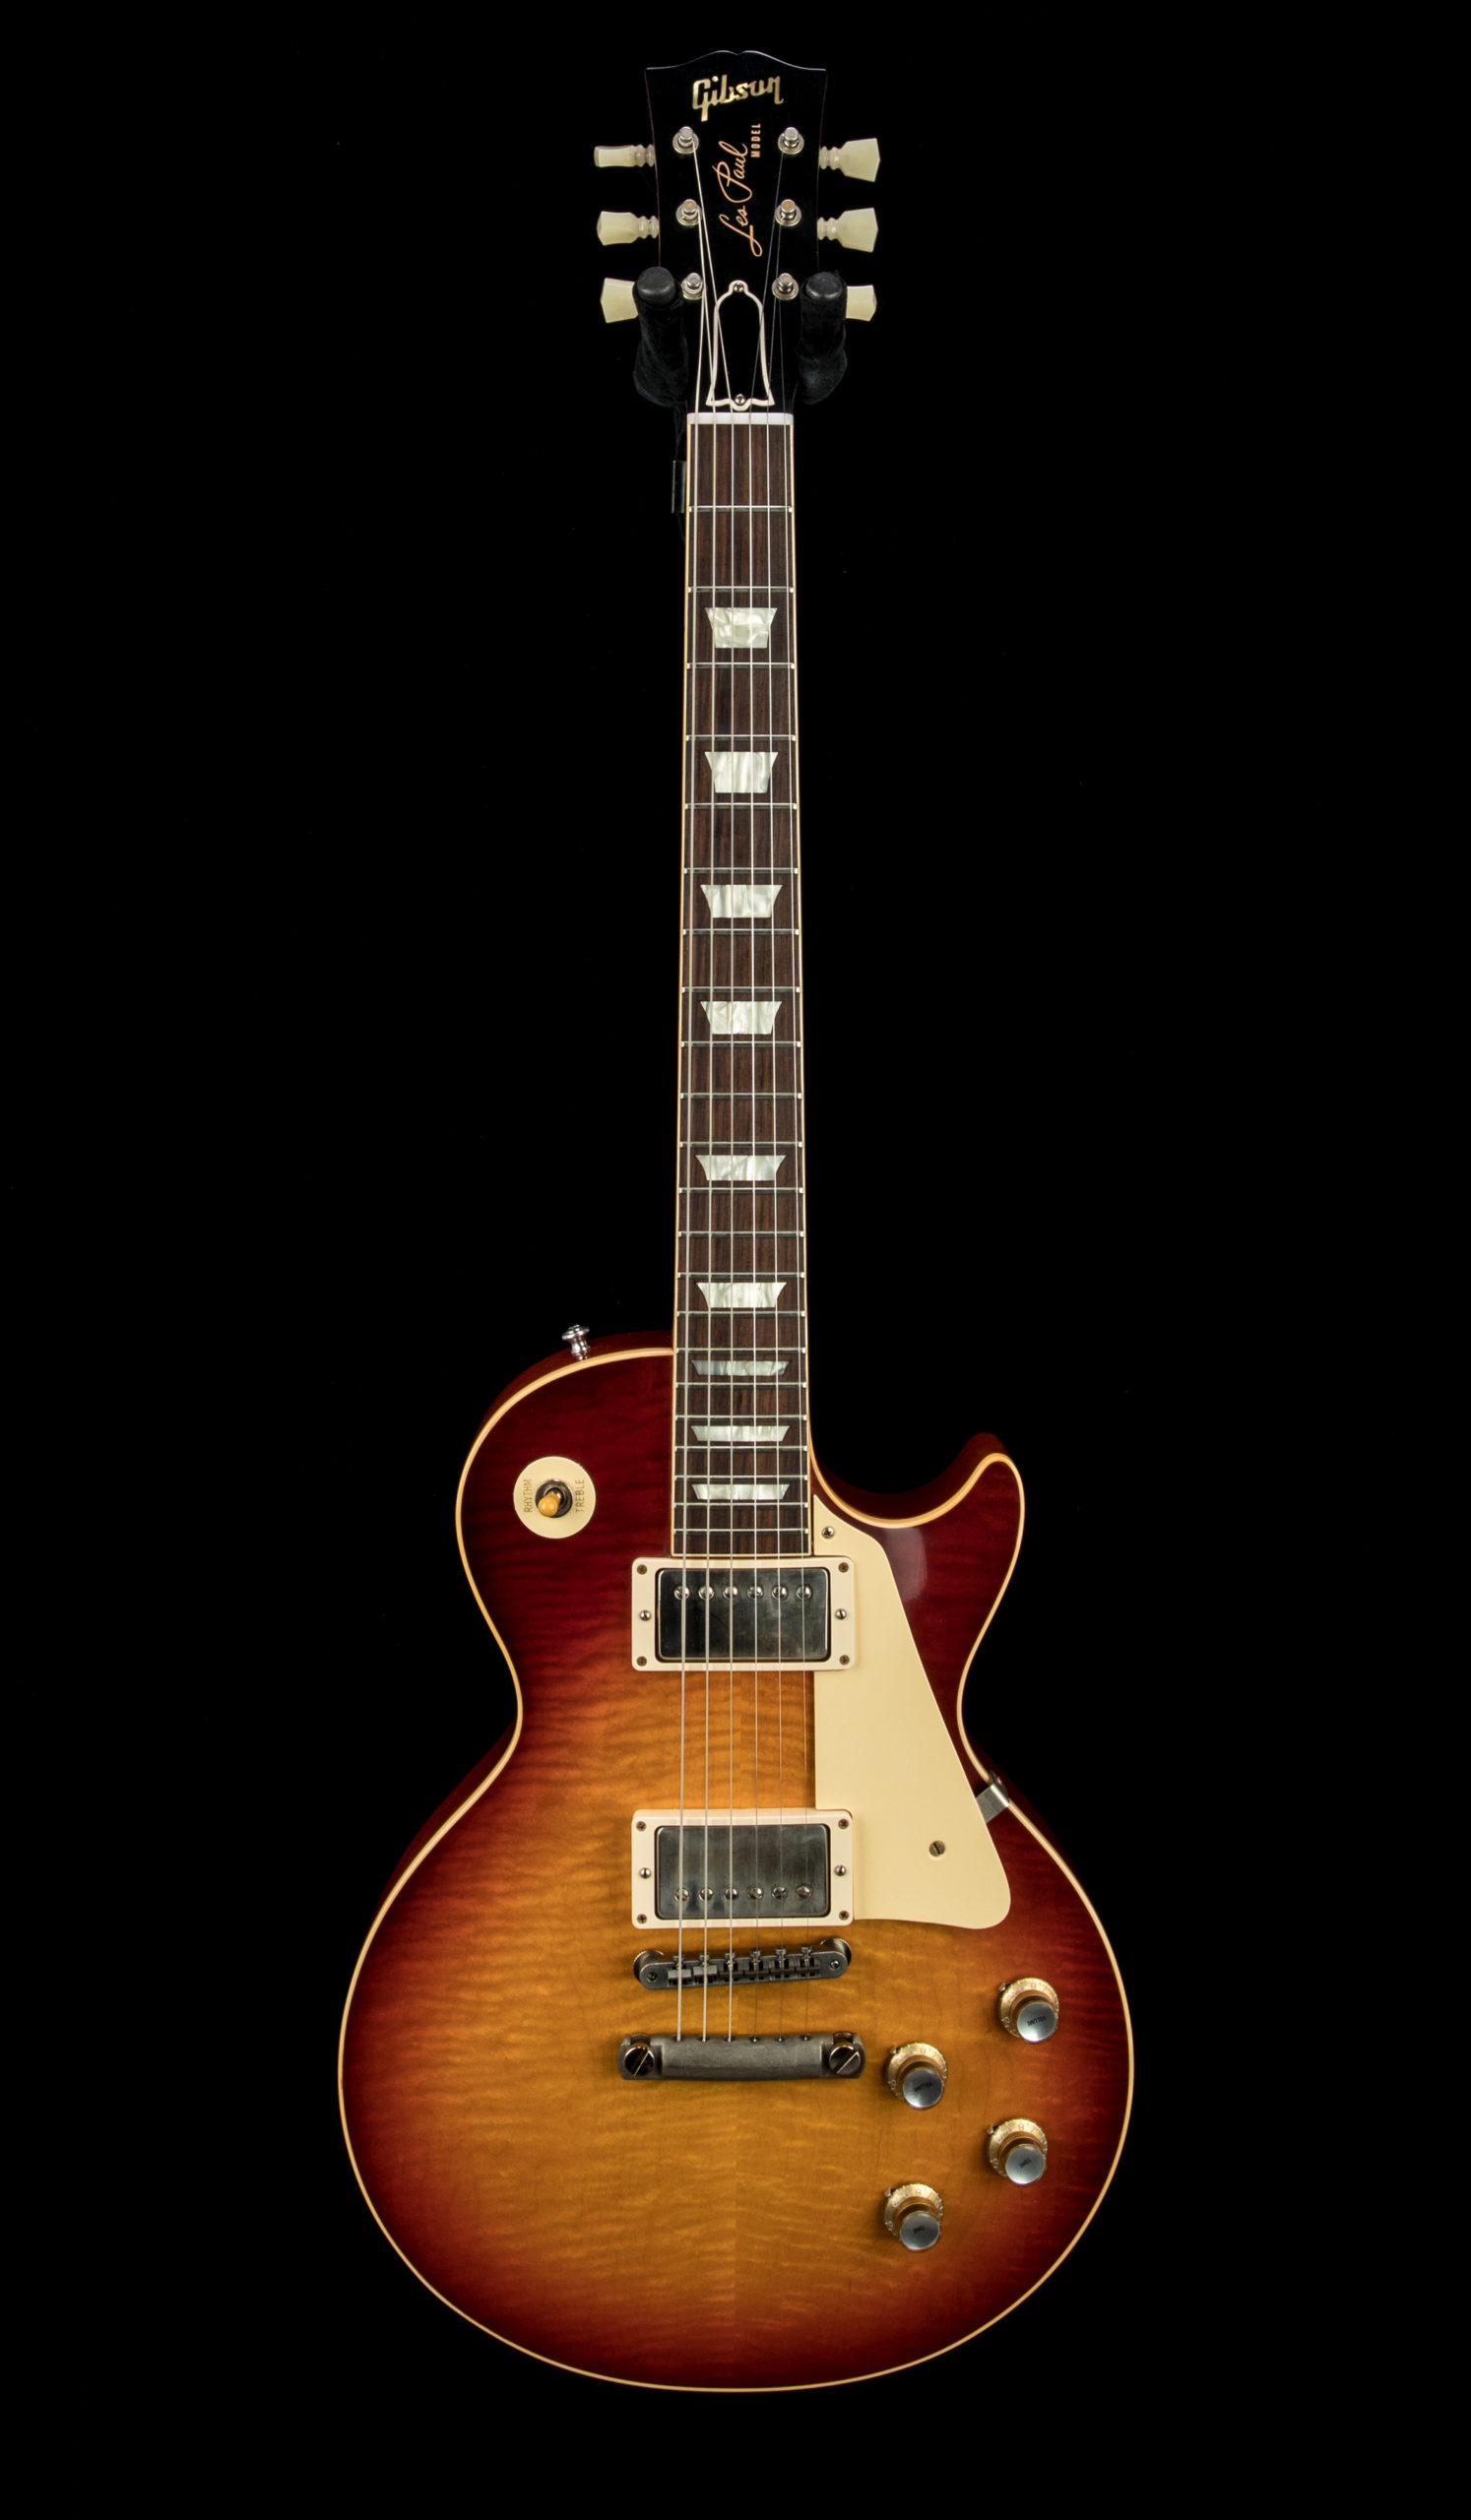 17 Used Gibson Custom 2018 Historic Les Paul #081023 Front